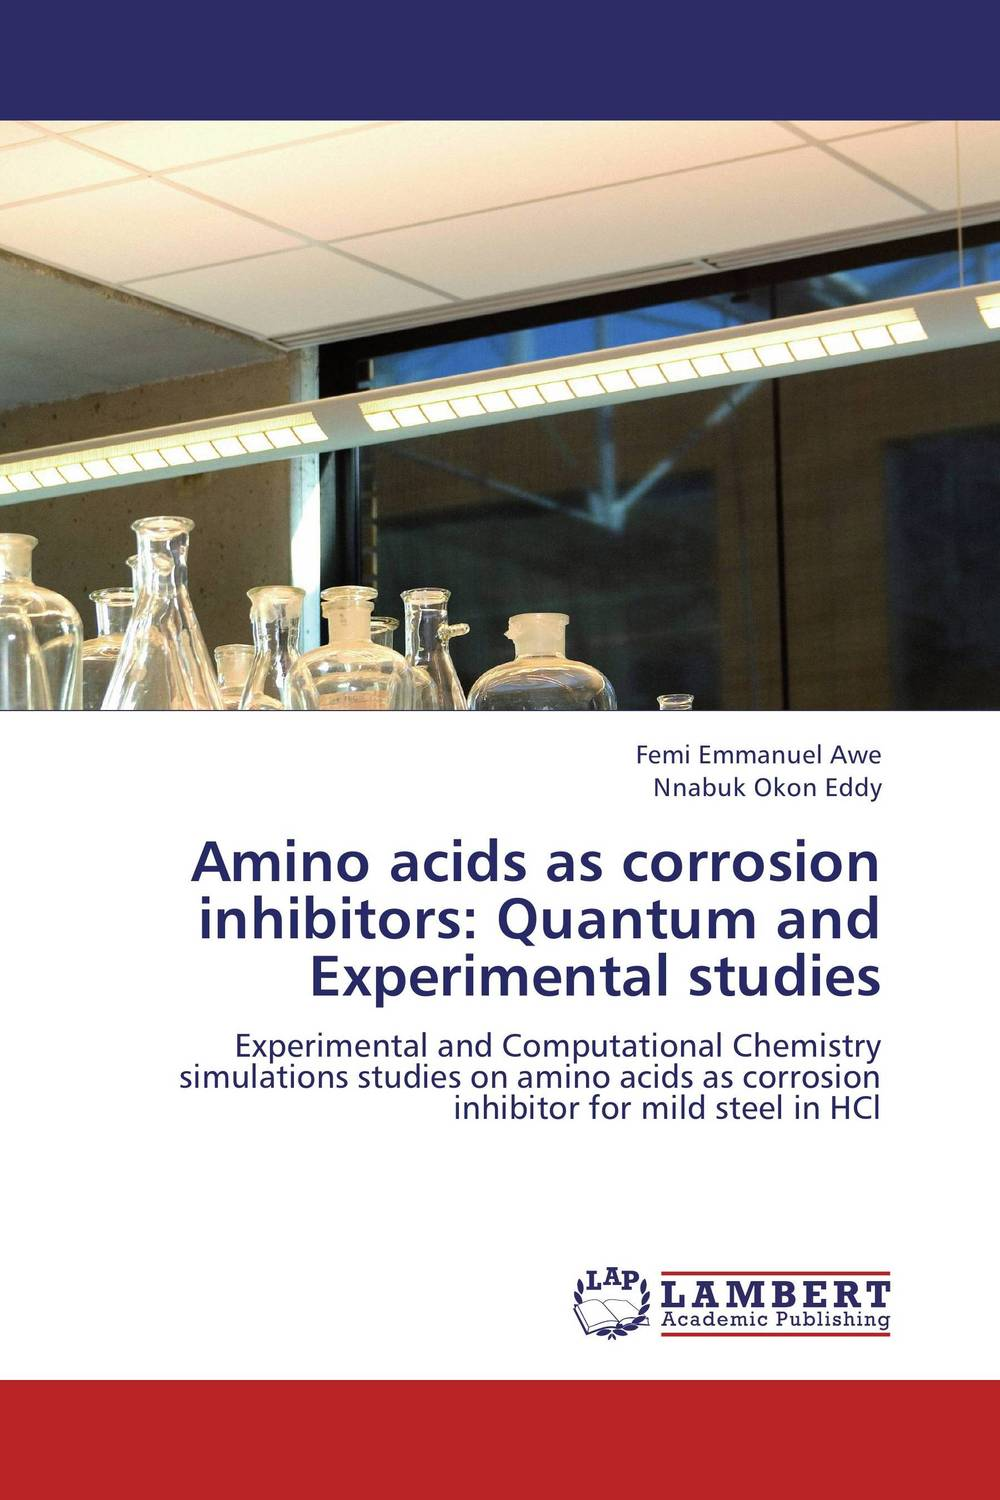 Amino acids as corrosion inhibitors: Quantum and Experimental studies evaluation of aqueous solubility of hydroxamic acids by pls modelling